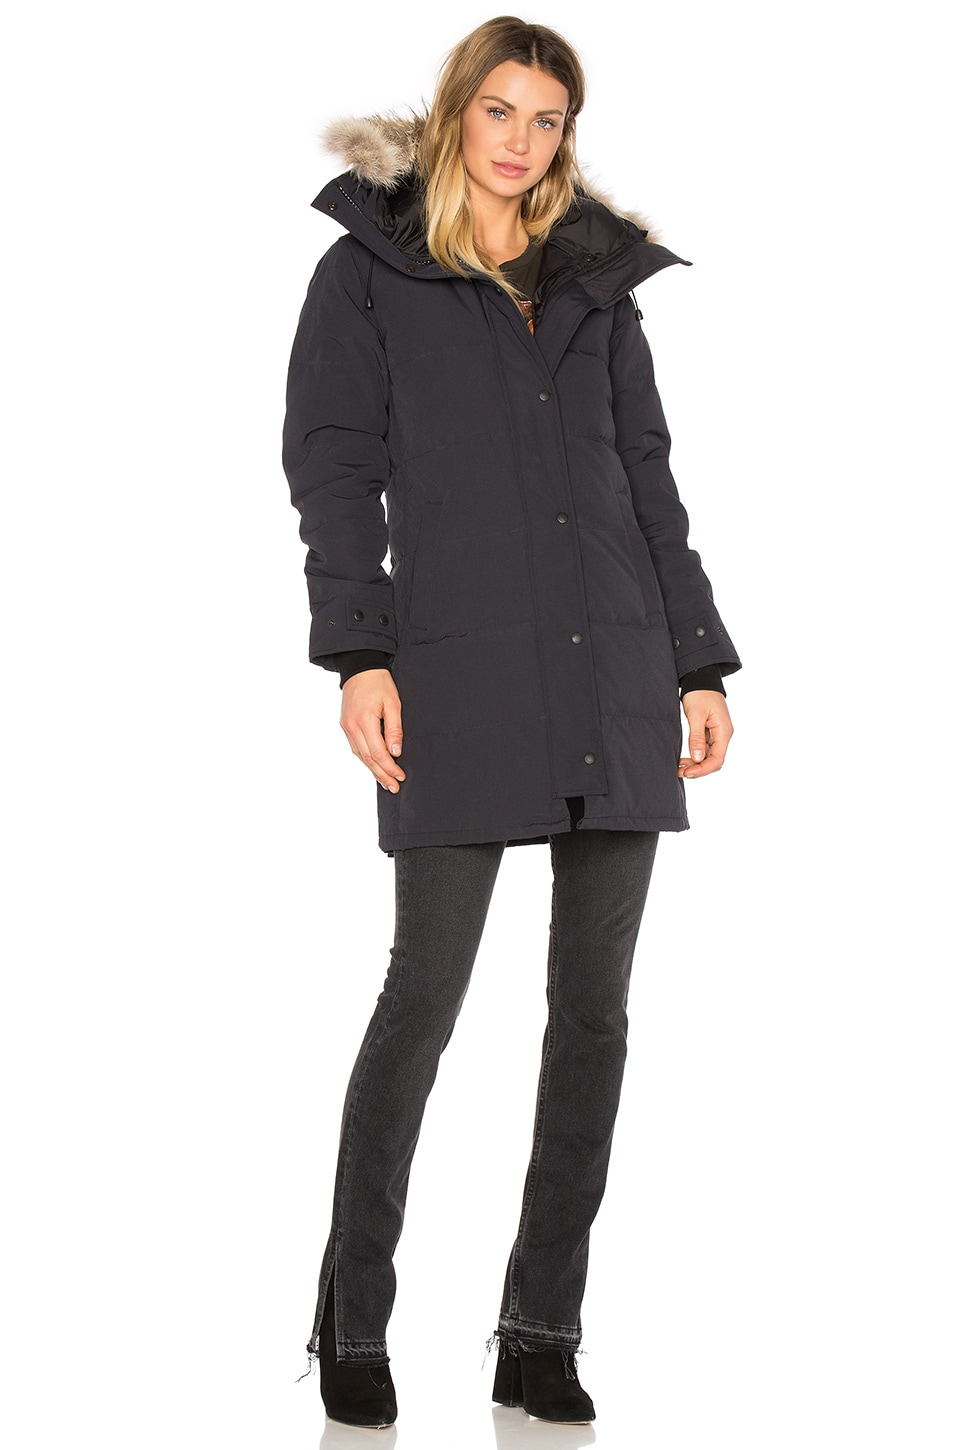 Canada Goose expedition parka online cheap - Canada Goose - REVOLVE